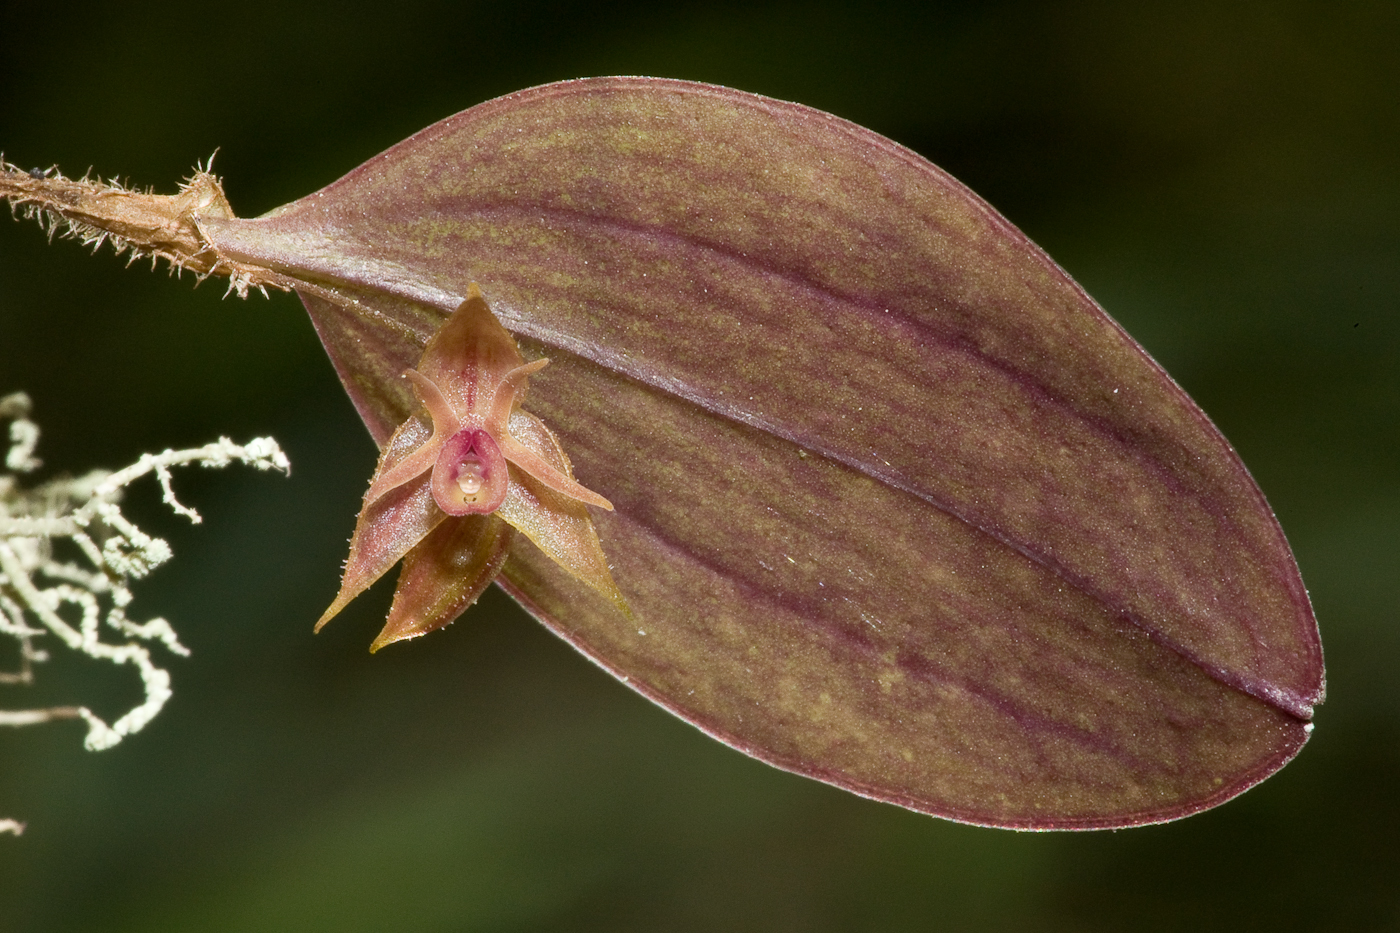 Lepanthes sp. Orchid near the Interoceanic highway in Peru